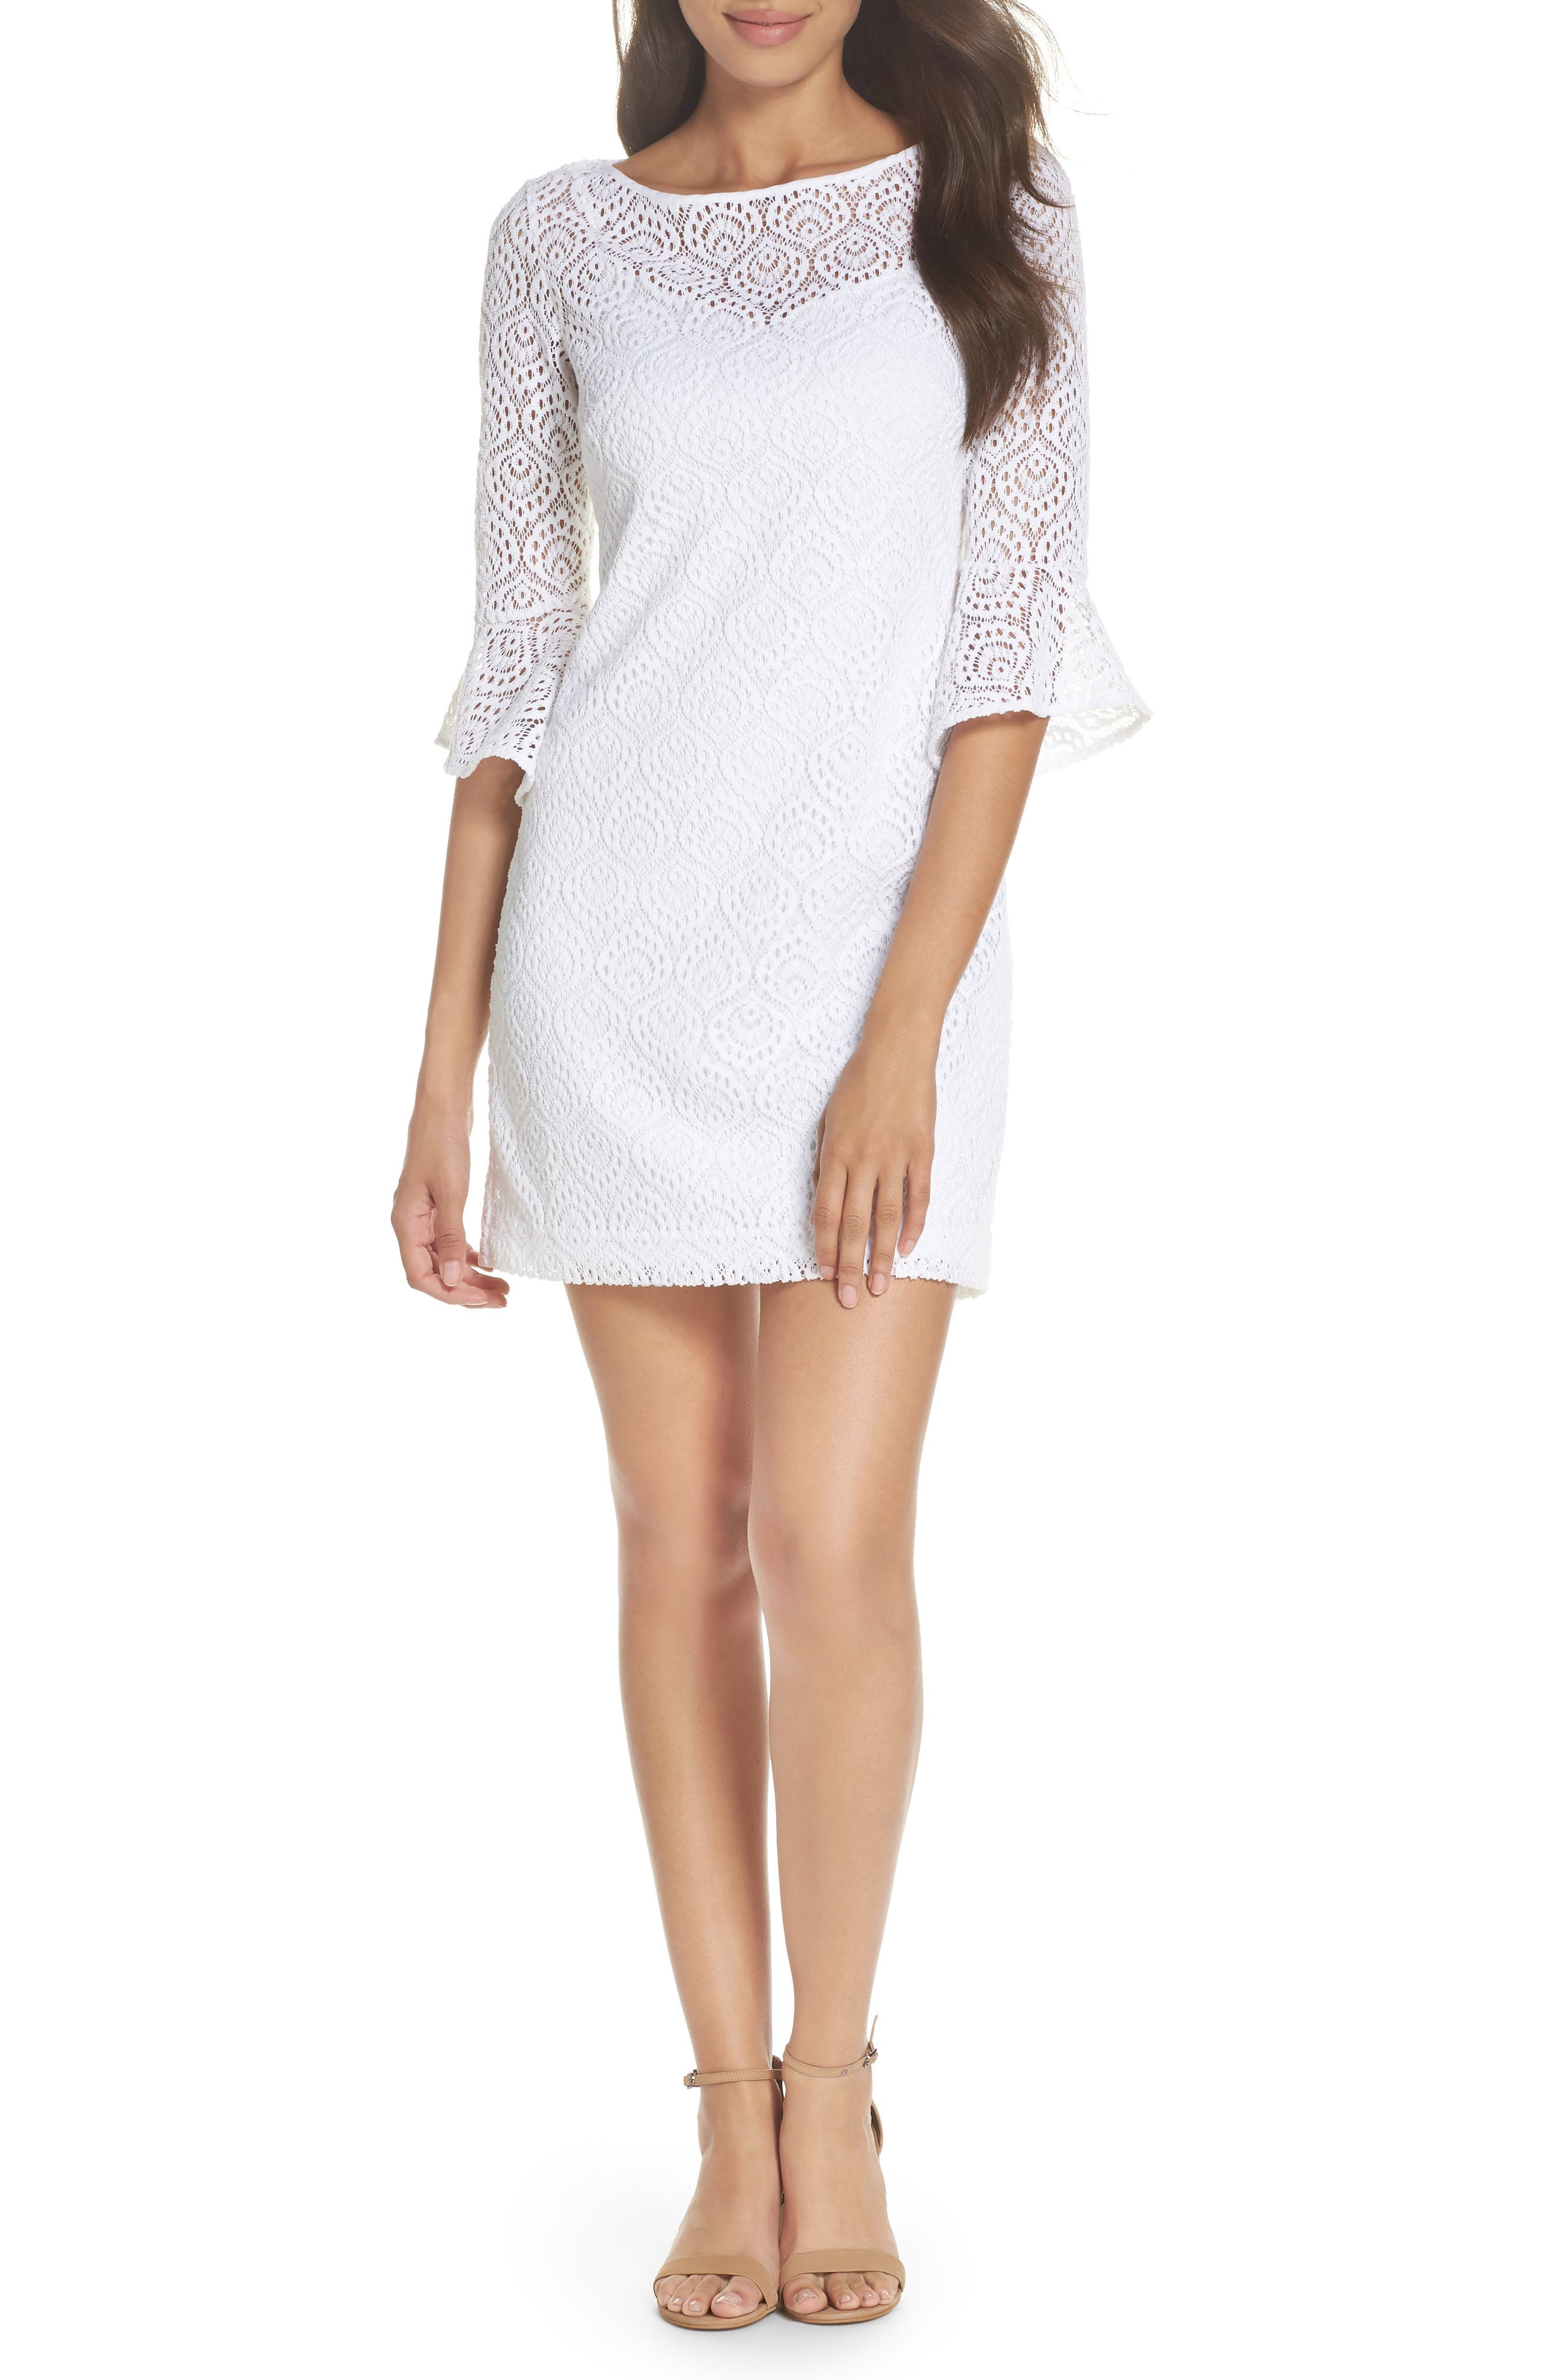 Fontaine Lace Minidress,                         Main,                         color, Resort White Gypsea Lace